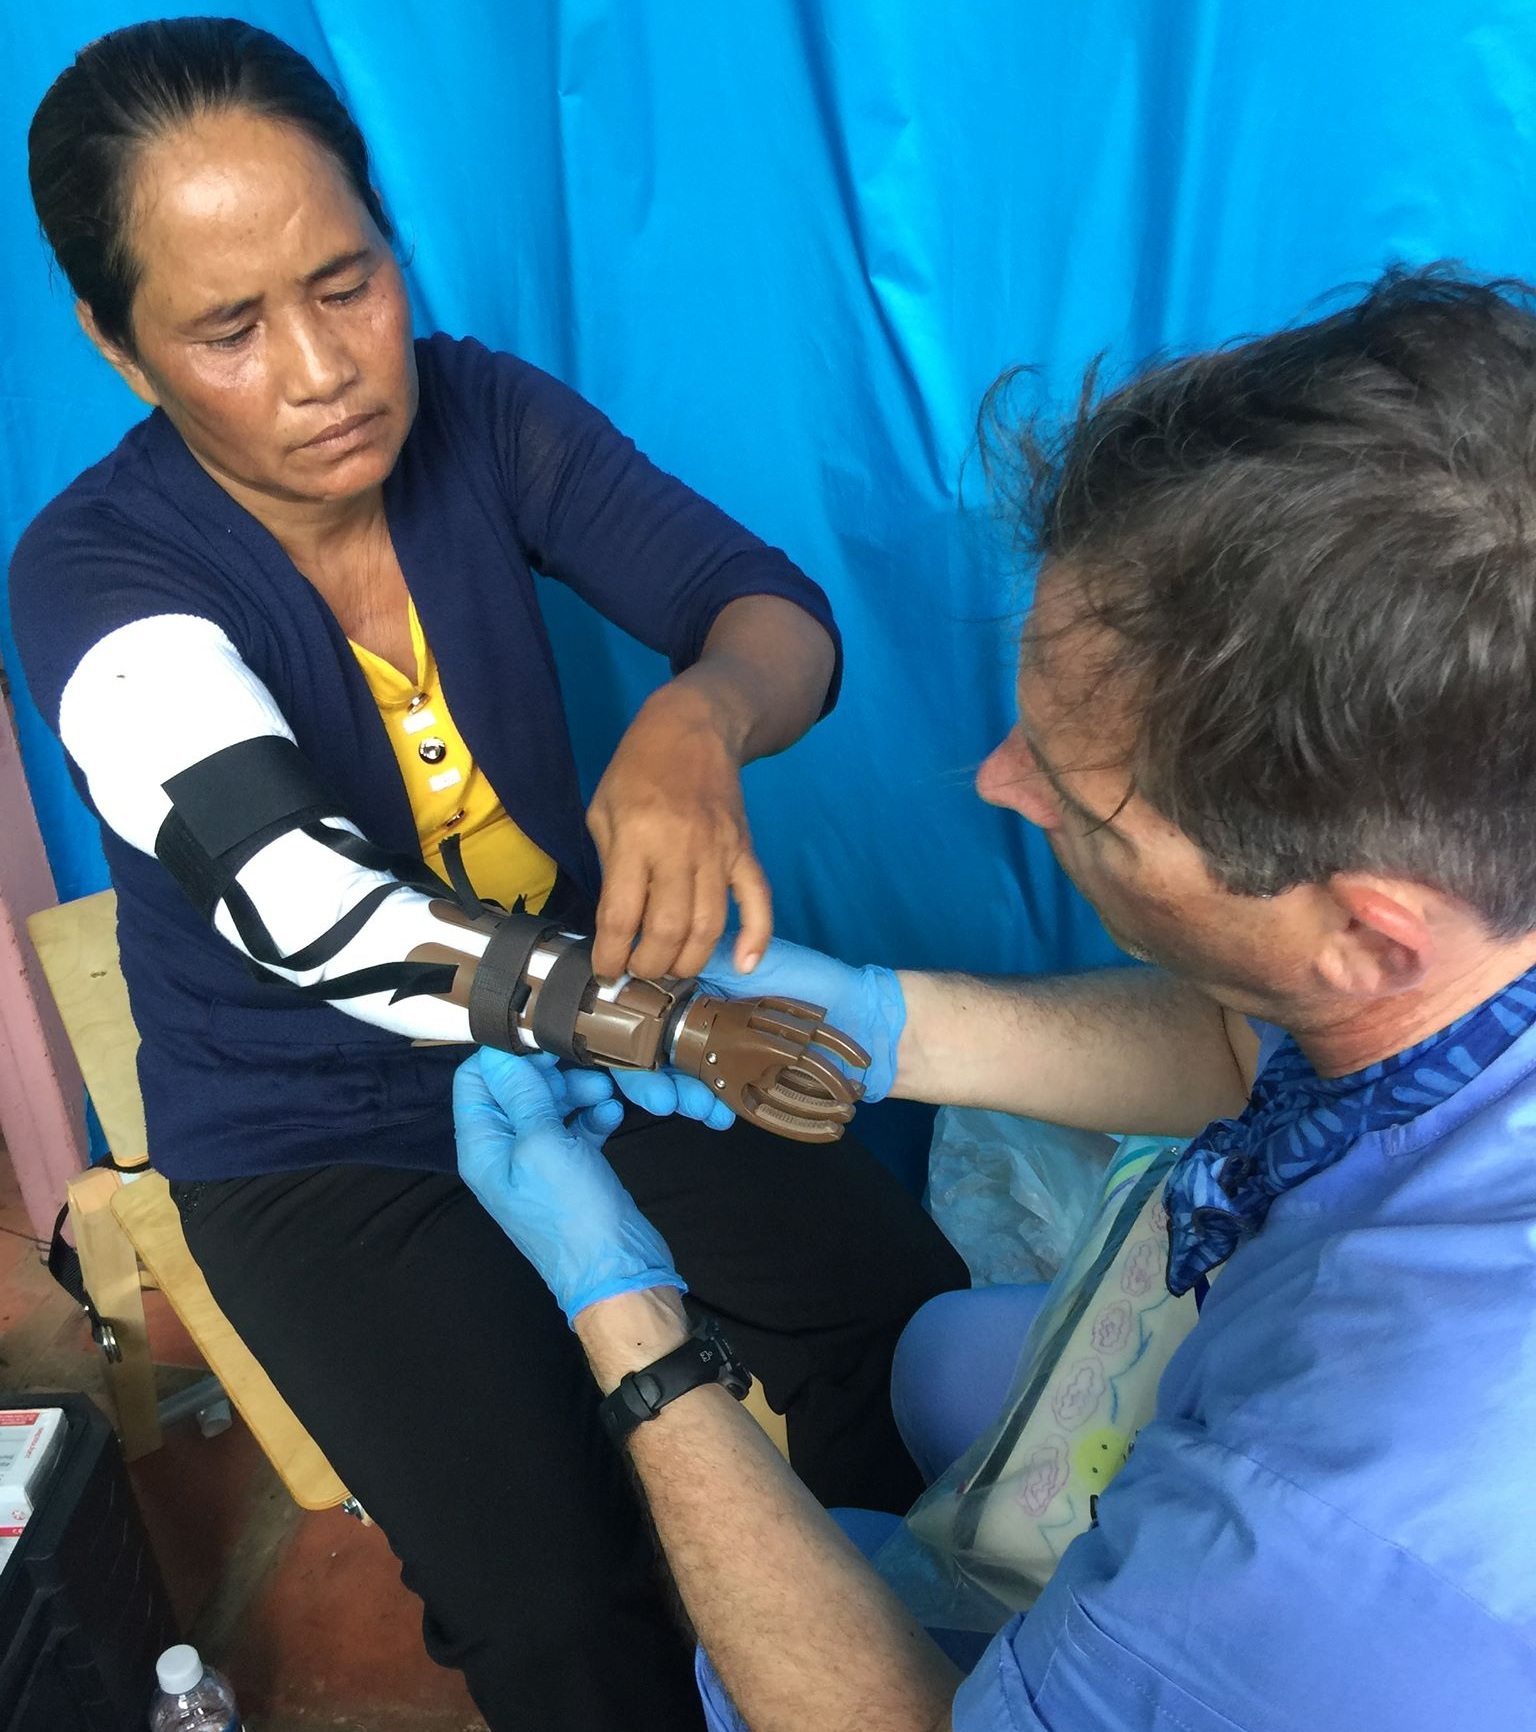 Our Impact - Since 2014, Sustainable Health Empowerment has embarked on five mission trips to Cambodia. During those trips, we conducted hundreds of health workshops, provided onsite dental and vision services, collaborated with locals to provide medical service, and outfitted dozens of patients with prosthetic arms. We also led trainings and health fairs to educate the population and providers and empower them with increased knowledge and resources.Off-site, SHE has coordinated the donation, packaging, and shipment of hundreds of thousands of dollars worth of useful medical equipment and supplies.This is just a snapshot of our impact. With your help, we can do even more.